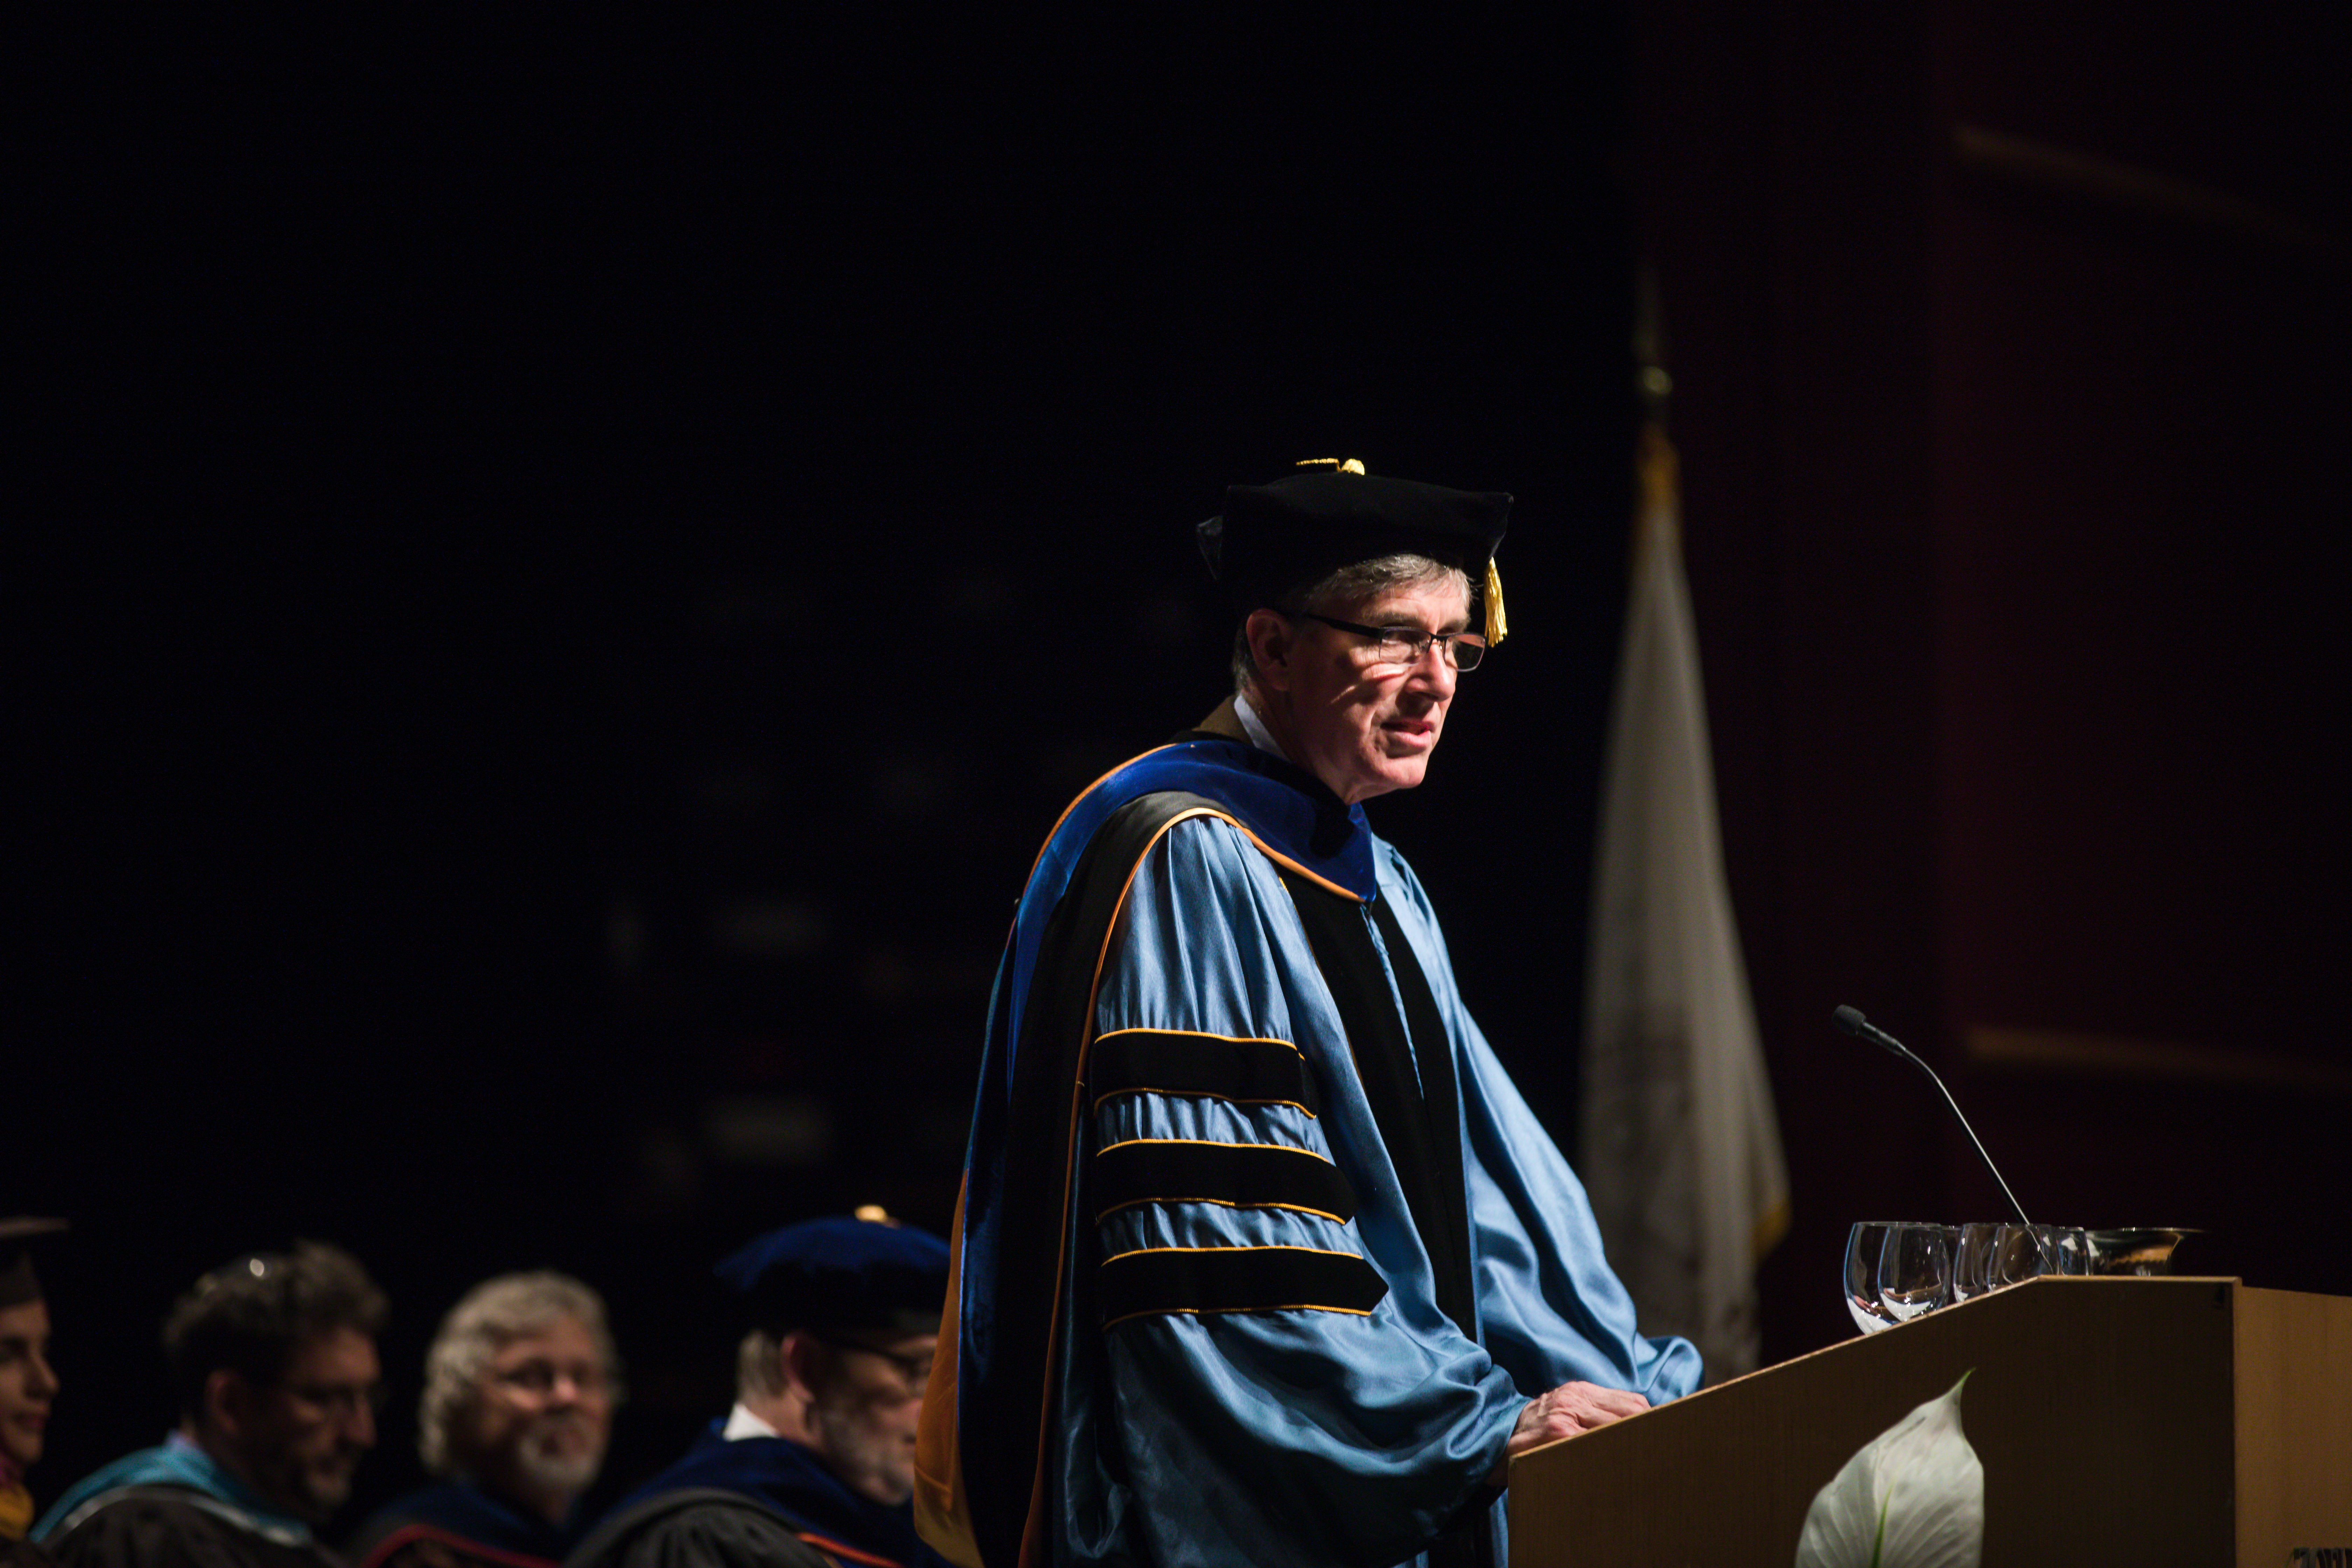 Lehigh Provost Pat Farrell speaks at the Honors Convocation while wearing regalia.